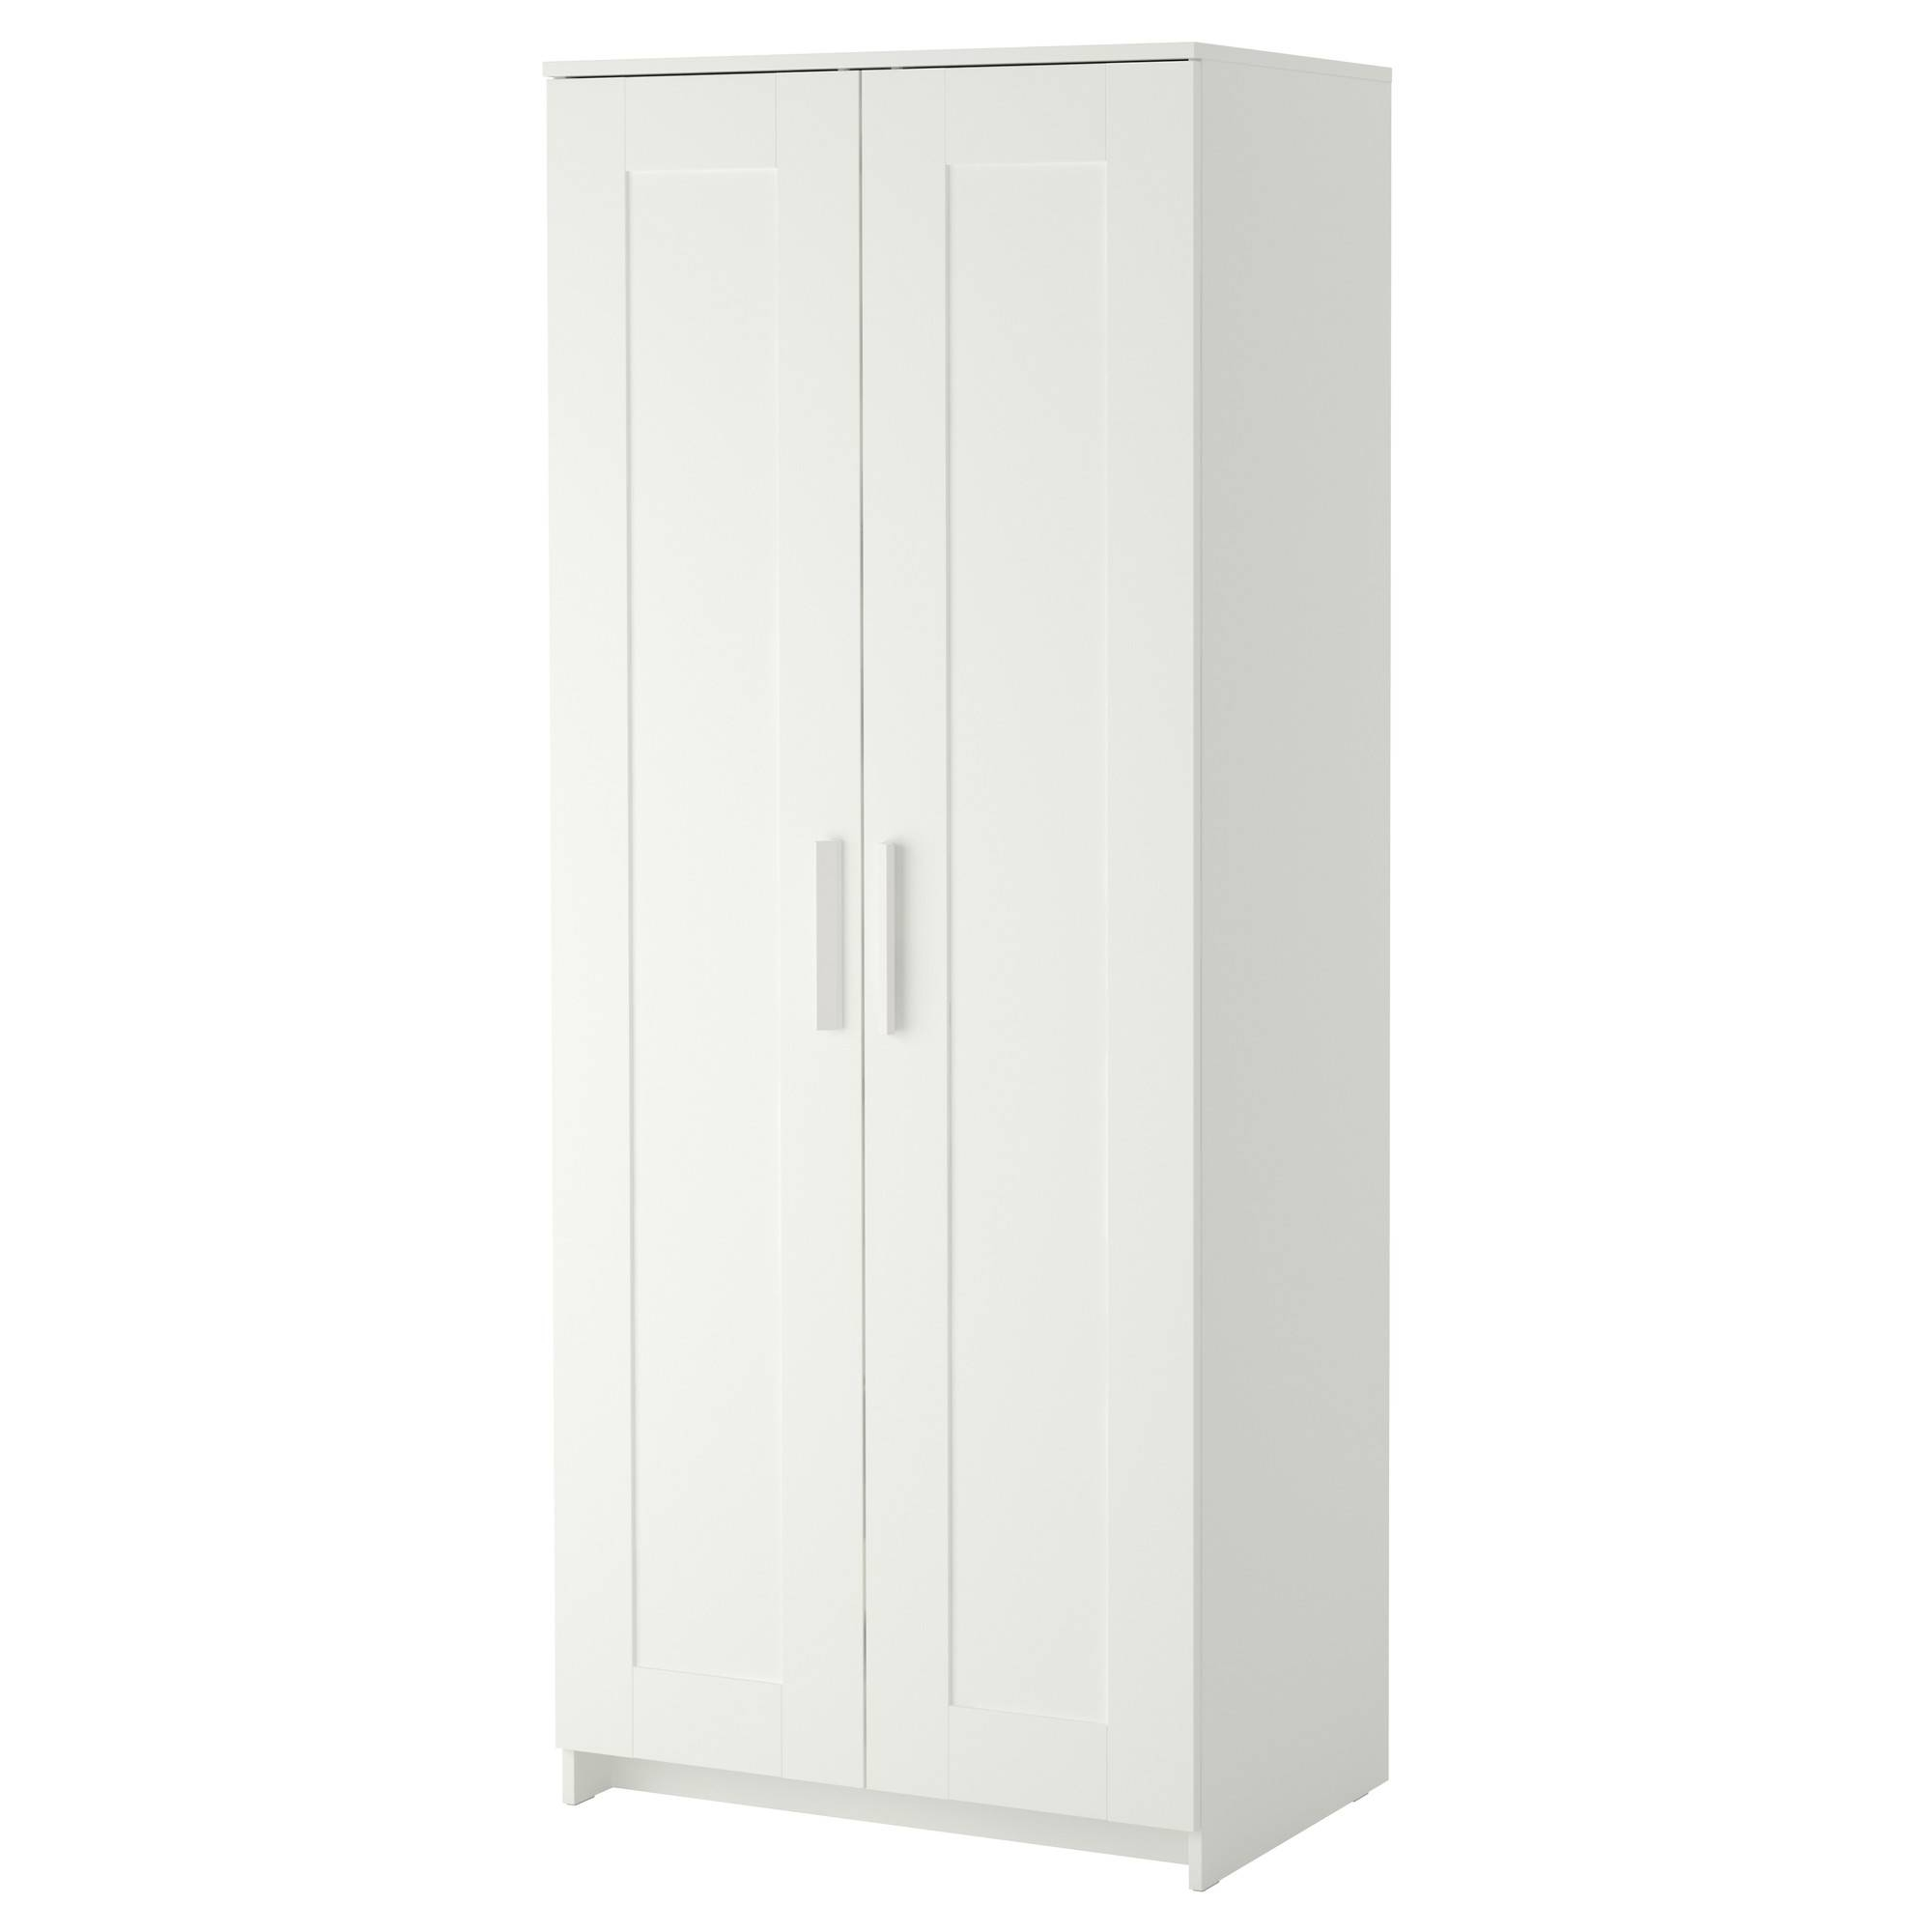 Free Standing Wardrobes | Ikea in Double Rail Wardrobes (Image 10 of 30)